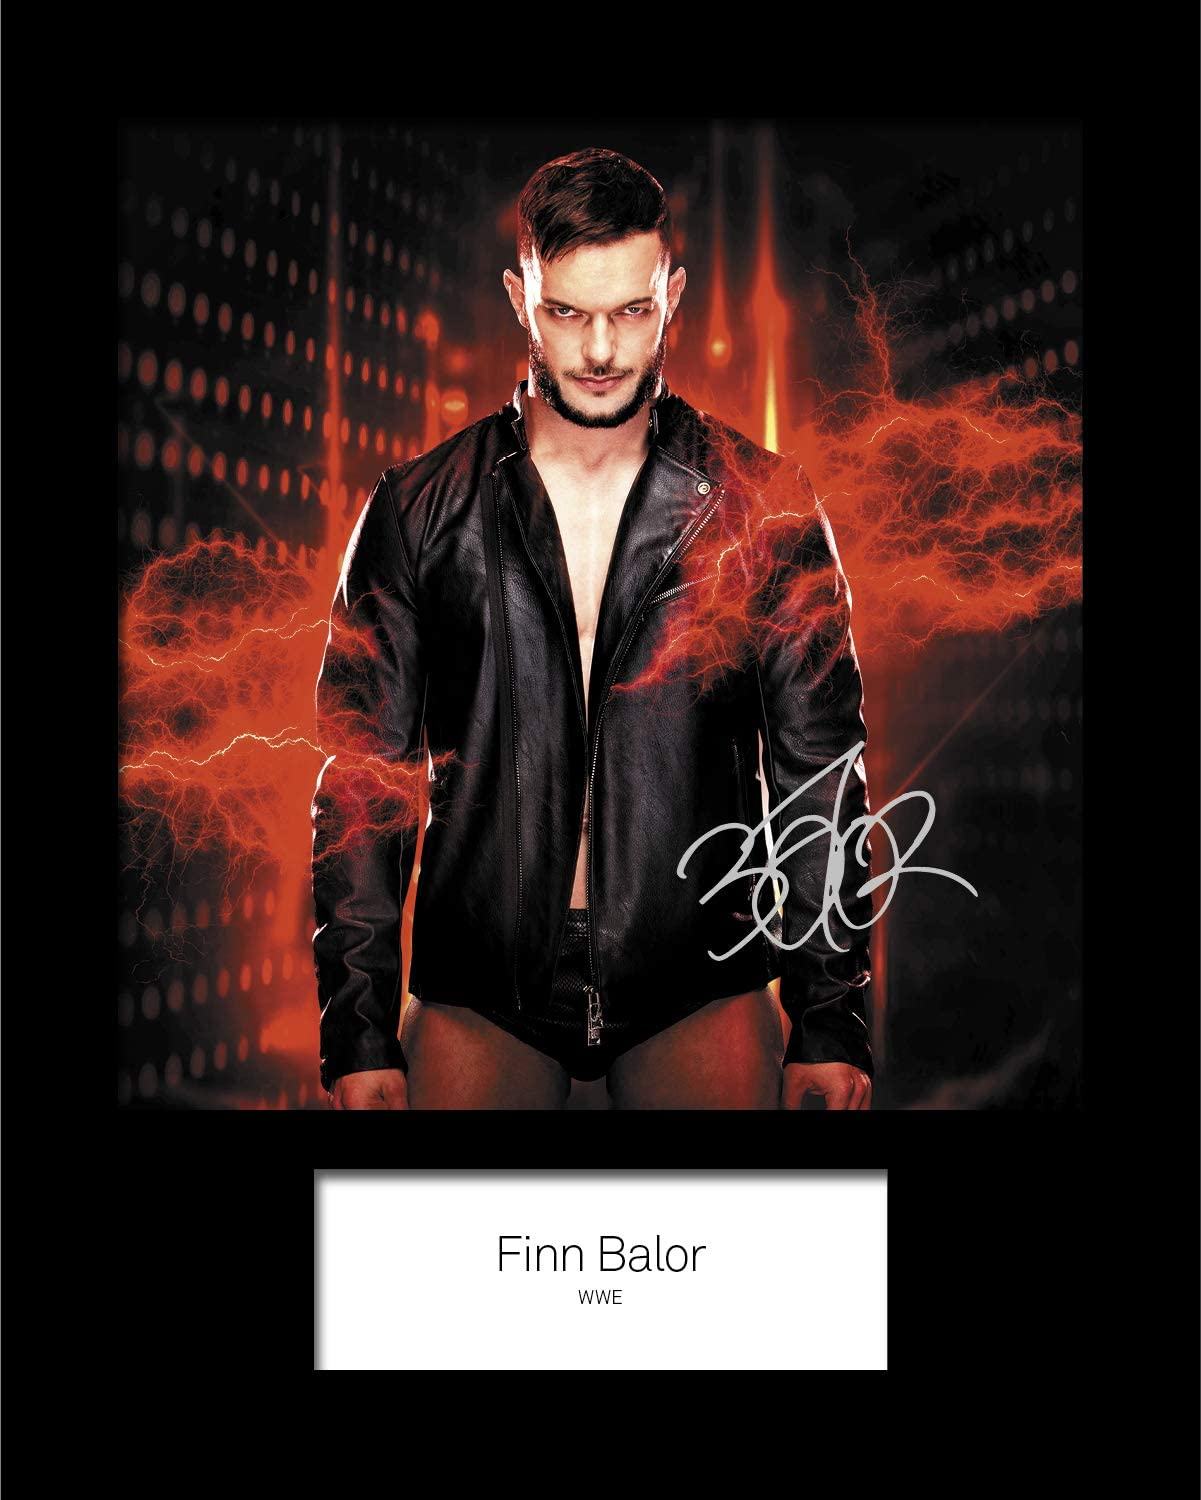 WWE Signed 10x8 Mounted Photo Print Reprint FINN BALOR #3 FREE DELIVERY